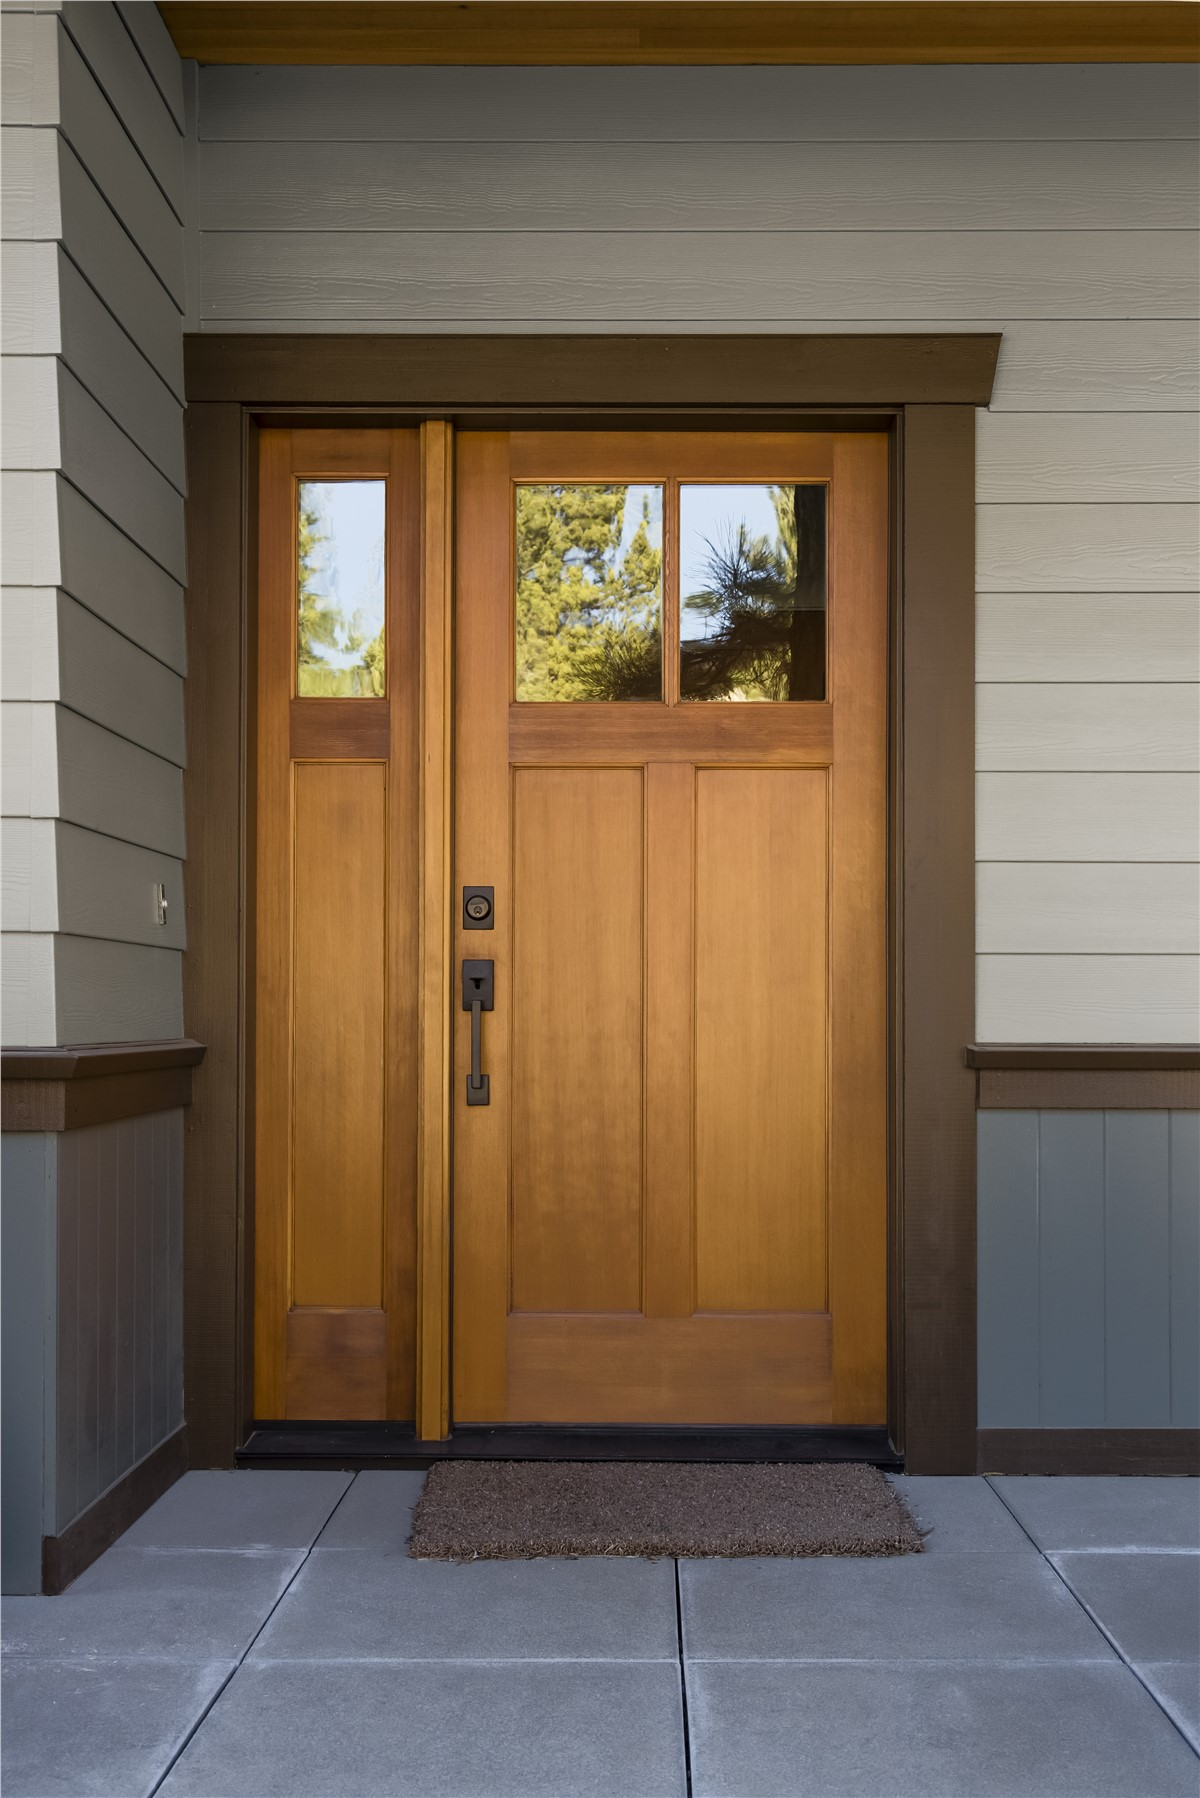 San Antonio Fiberglass Entry Doors Entry Door Installation